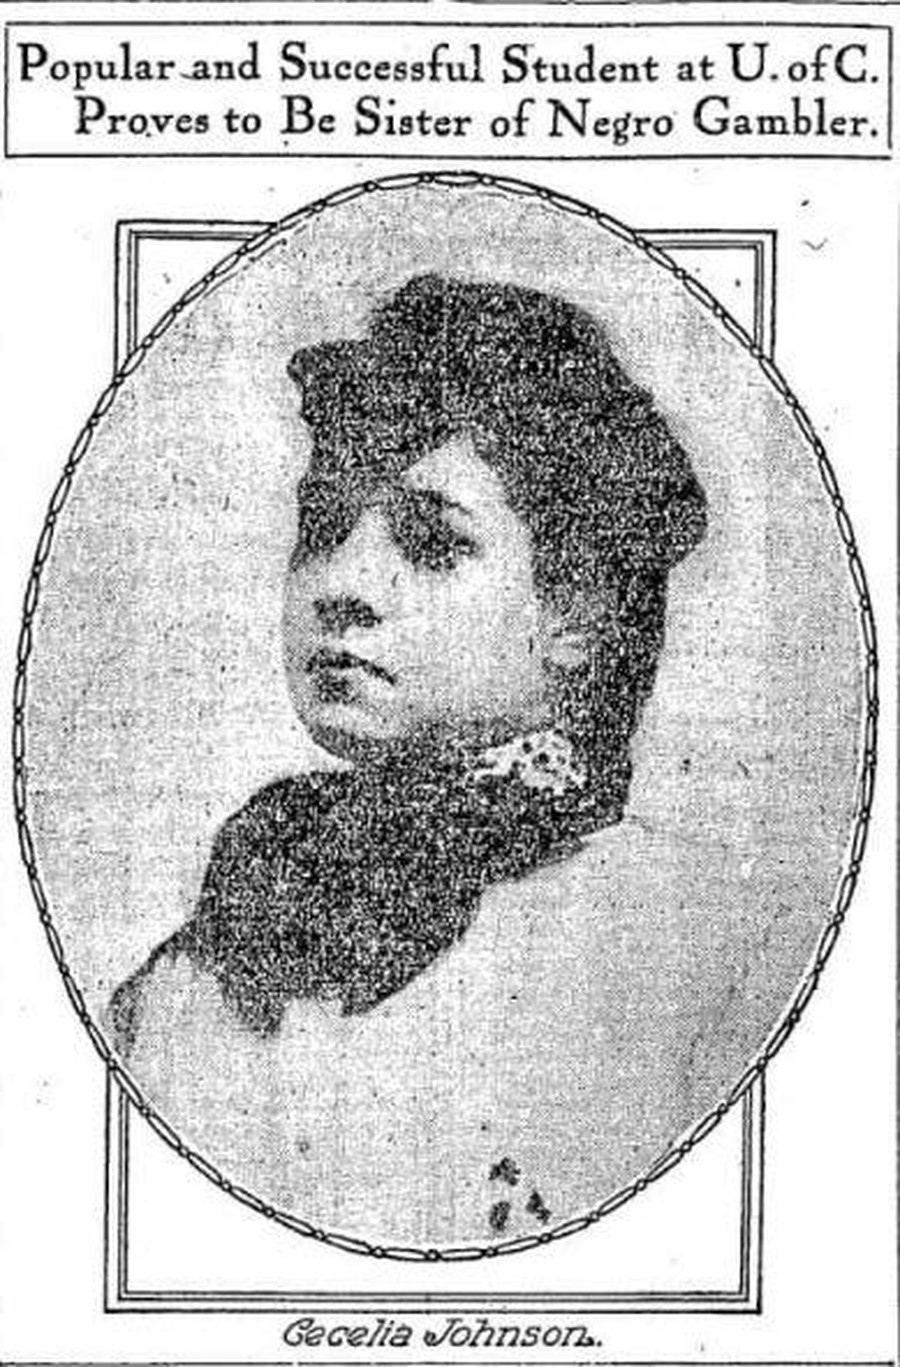 Cecilia Johnson, as depicted in a June 1907 issue of the Chicago Tribune.